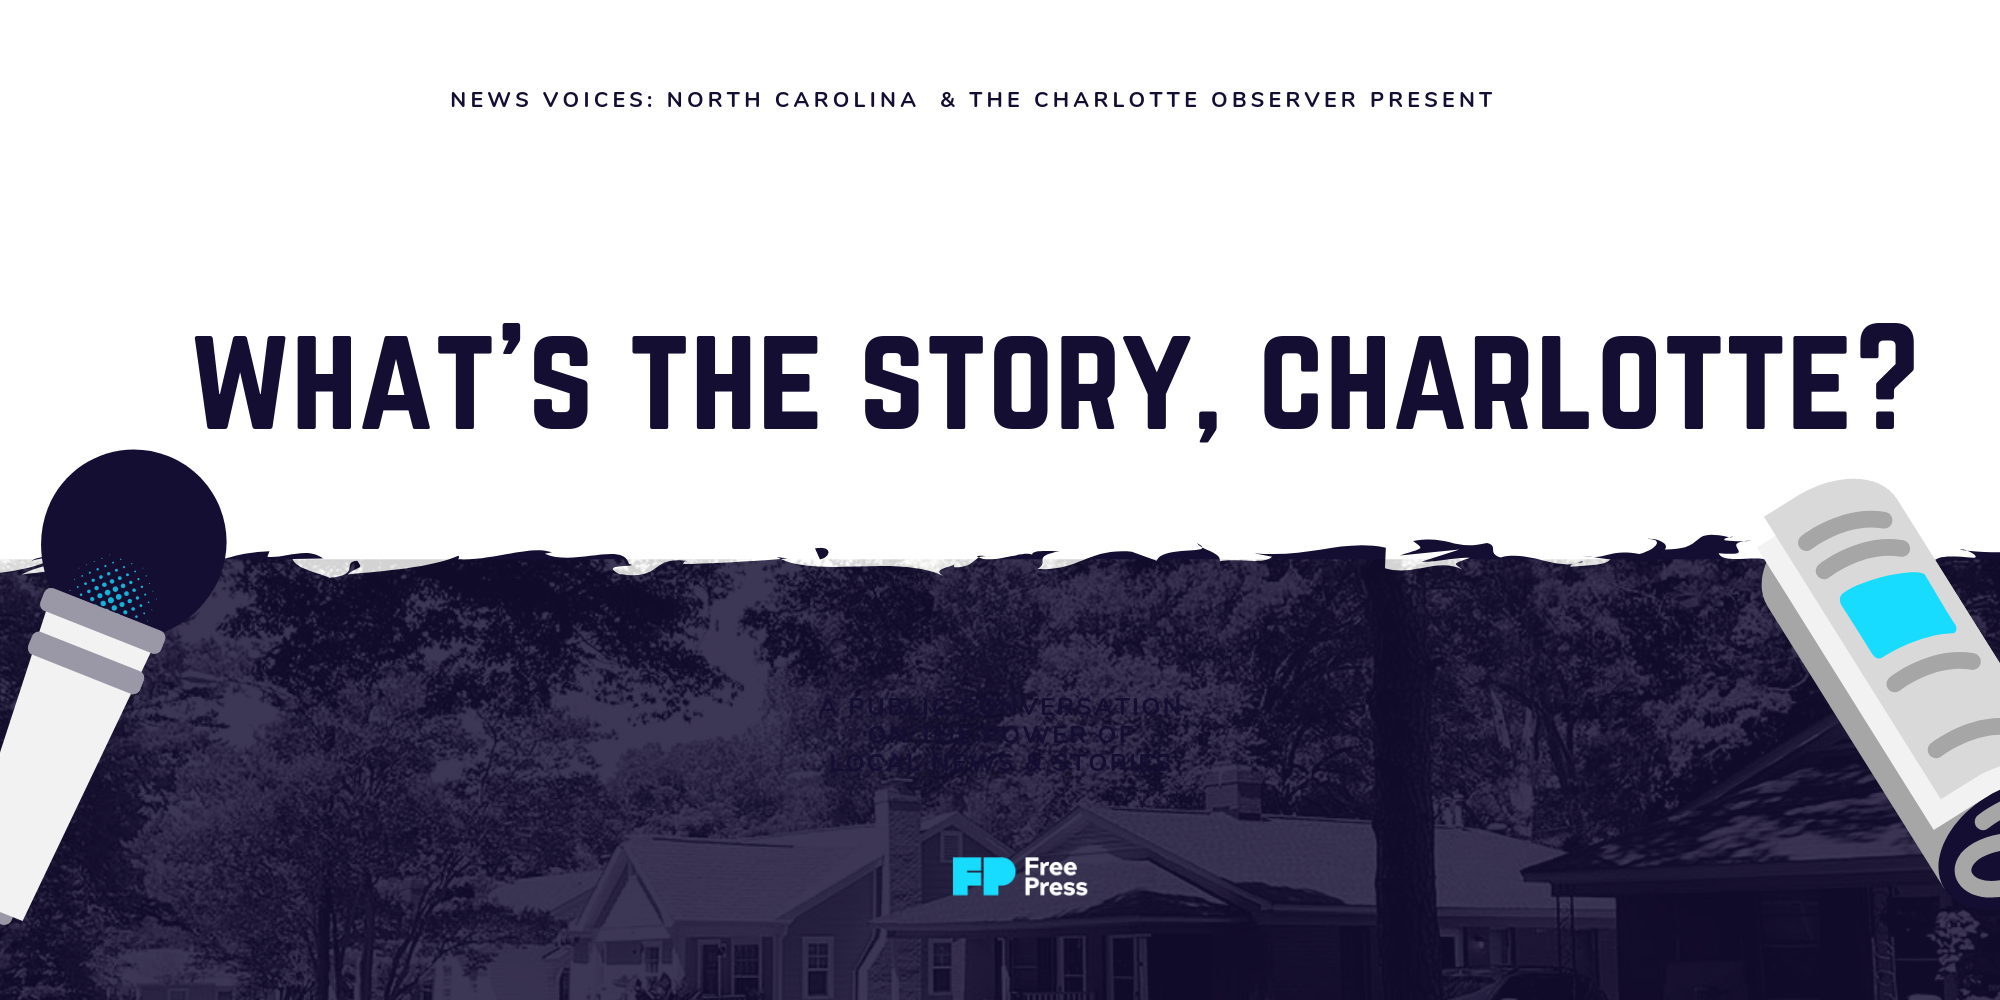 News Voices: North Carolina & The Charlotte Observer Present: What's the Story, Charlotte?